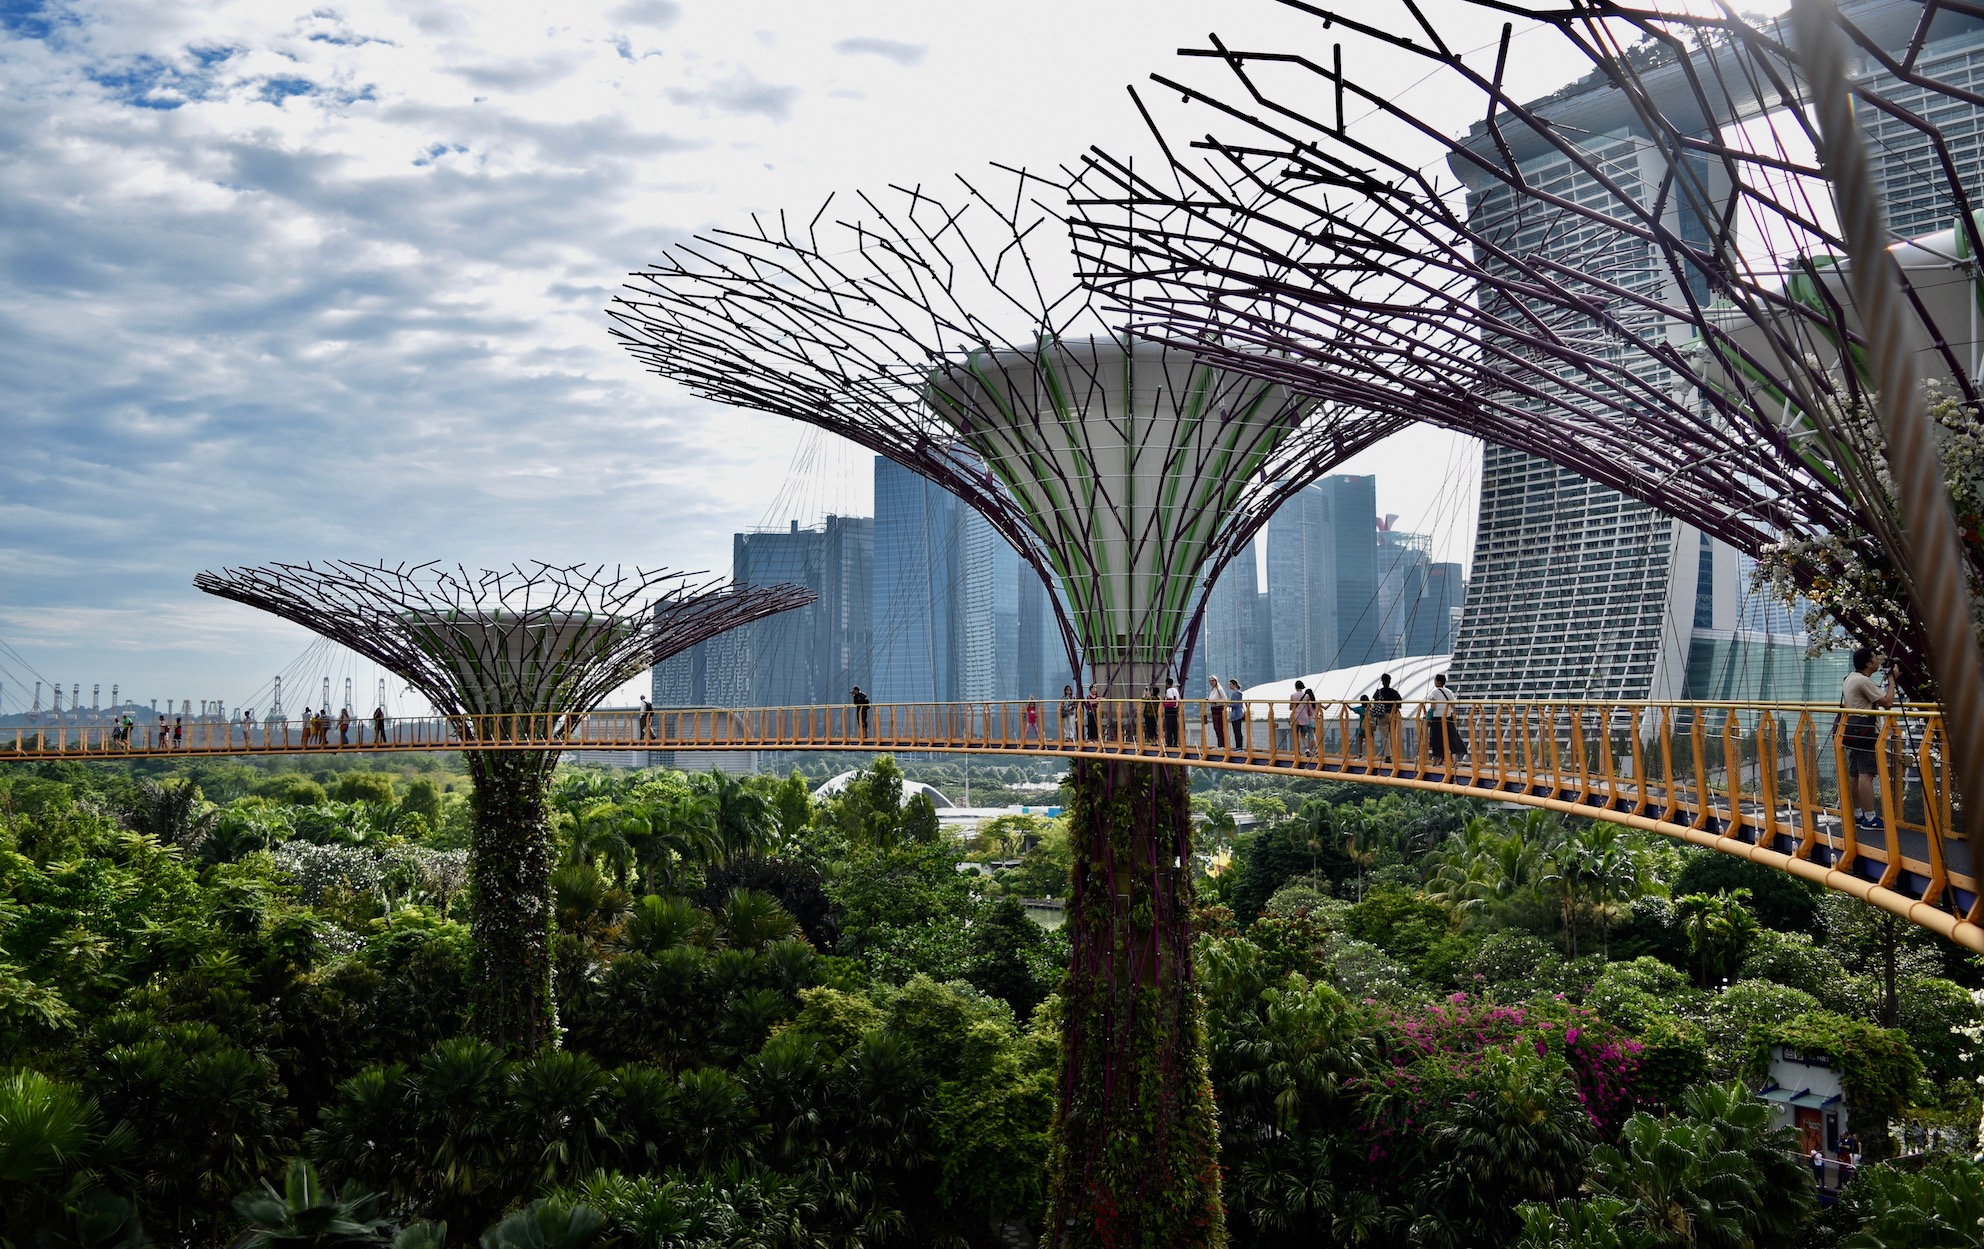 The gardens of Singapore: Here's how to get the most out ofAsia's greenest city